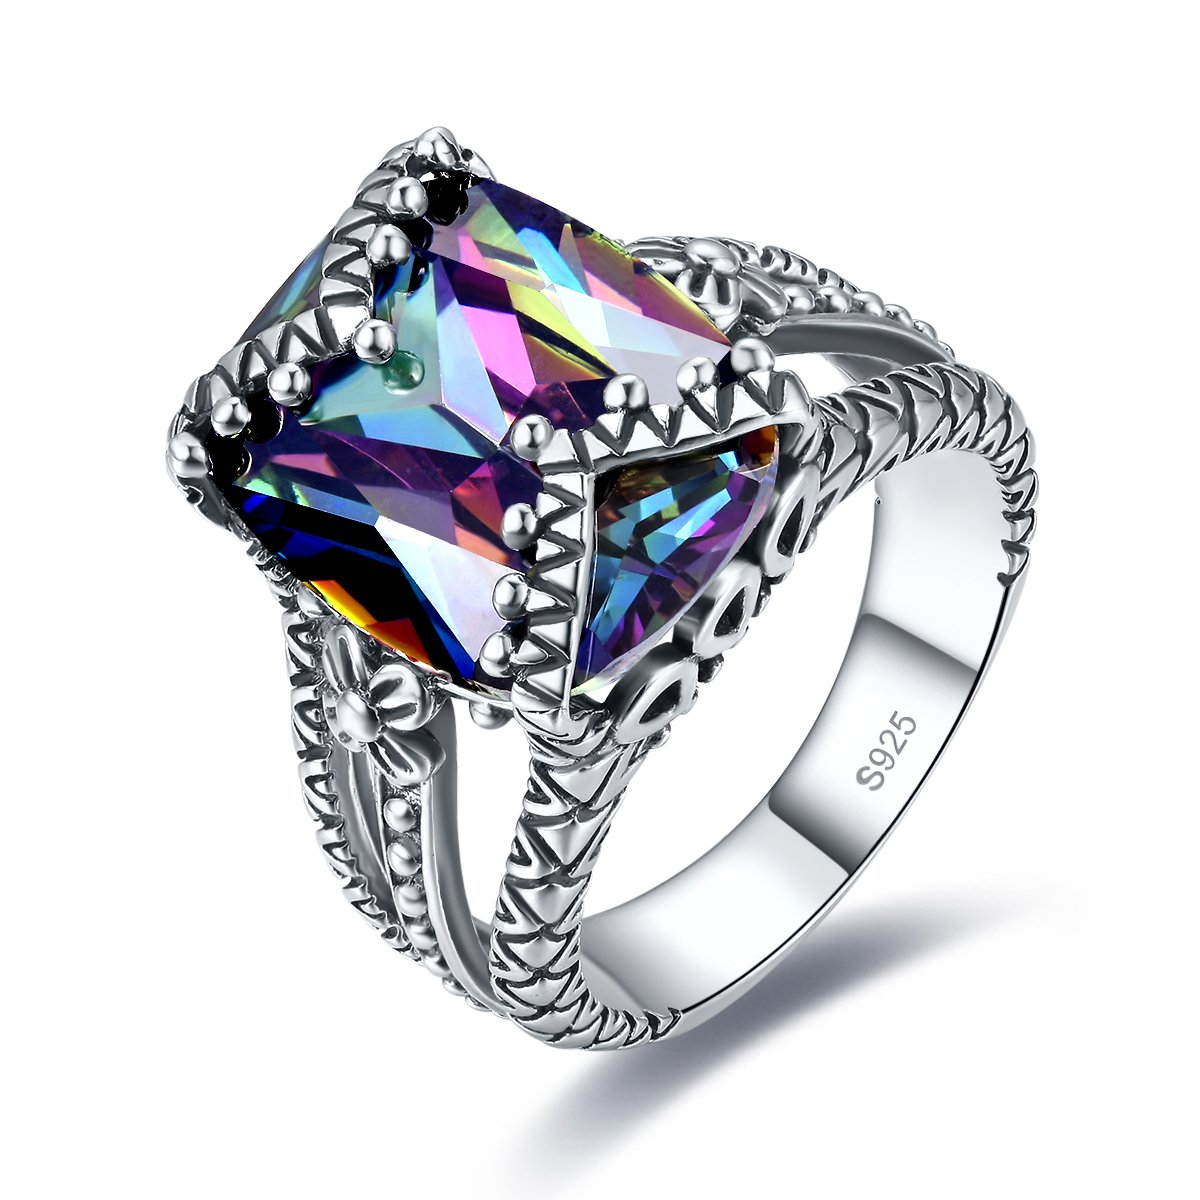 Merthus Antique Style Womens 925 Sterling Silver Created Mystic Rainbow Topaz Split Shank Band Ring